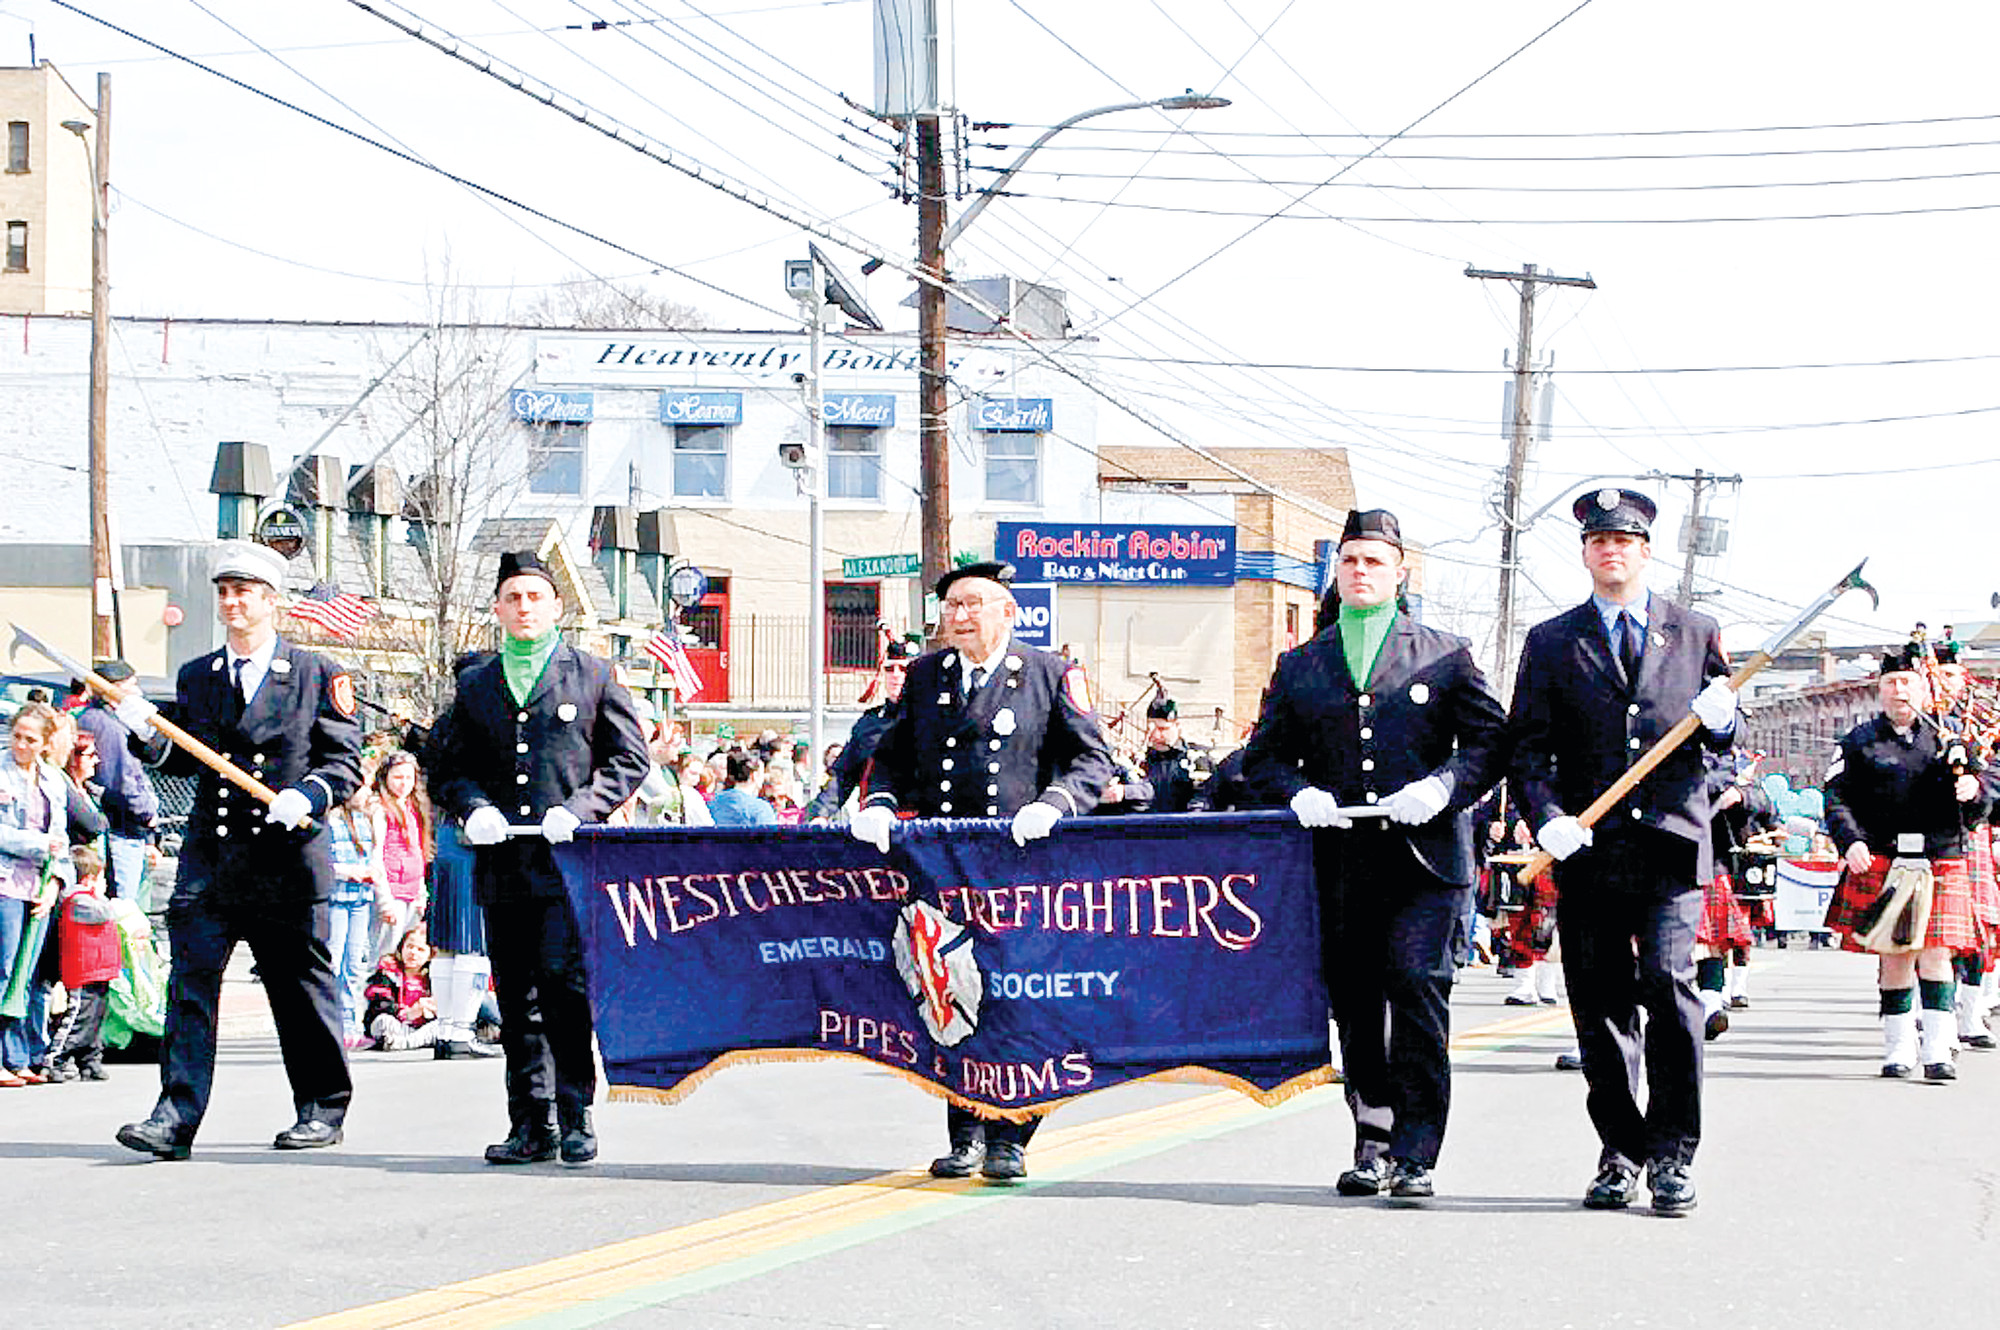 The Westchester Firefighters Emerald Society joined the parade.